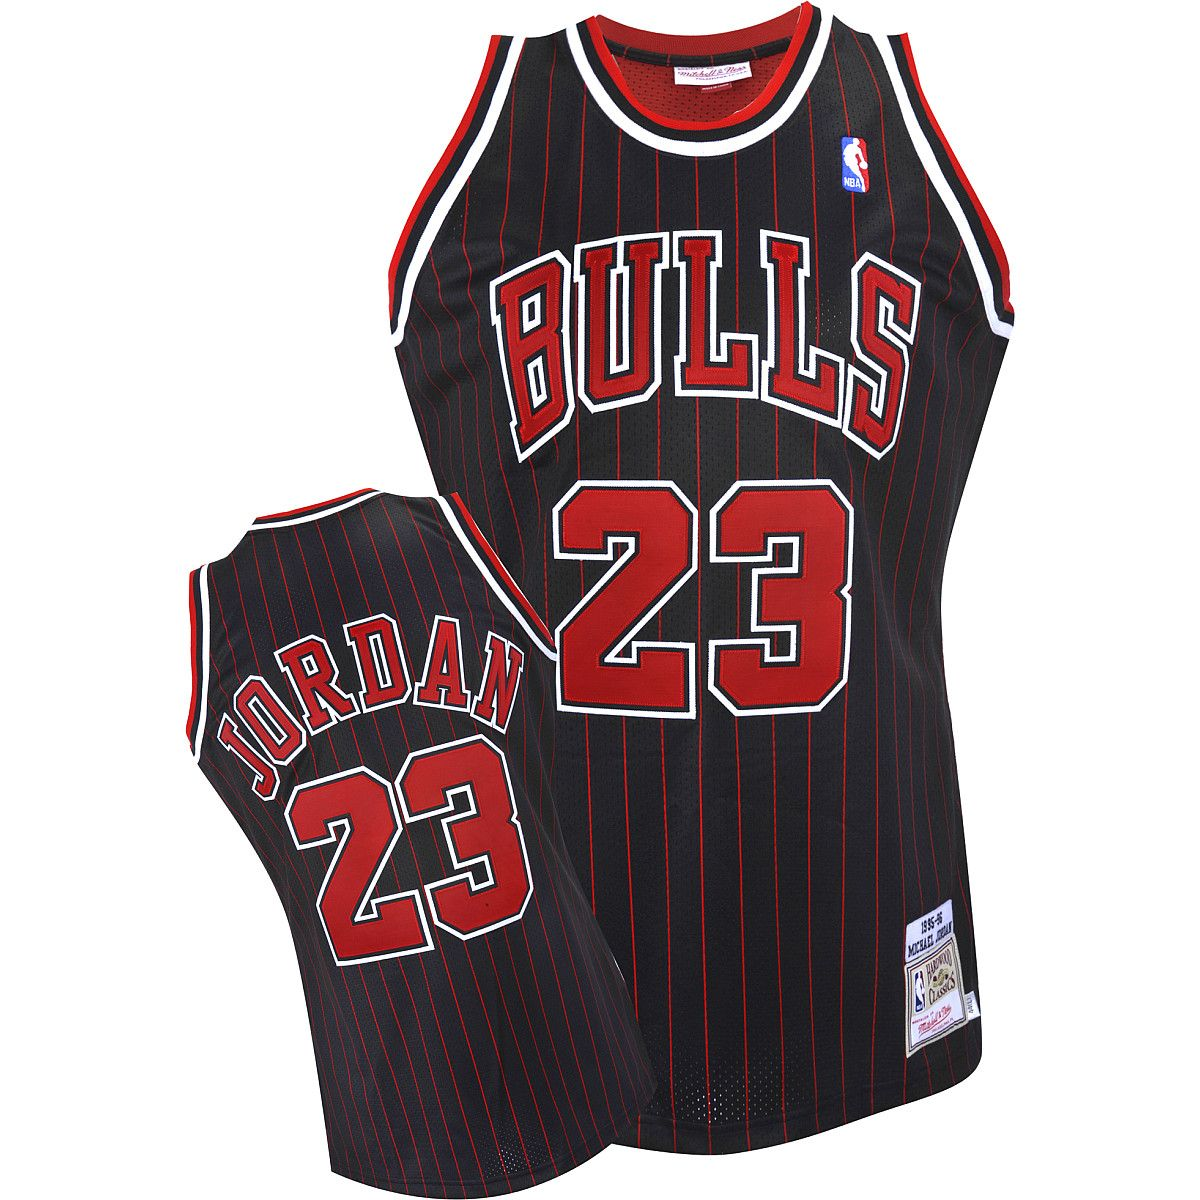 I Used To Have This Jersey Chicago Bulls Michael Jordan Chicago Bulls Michael Jordan